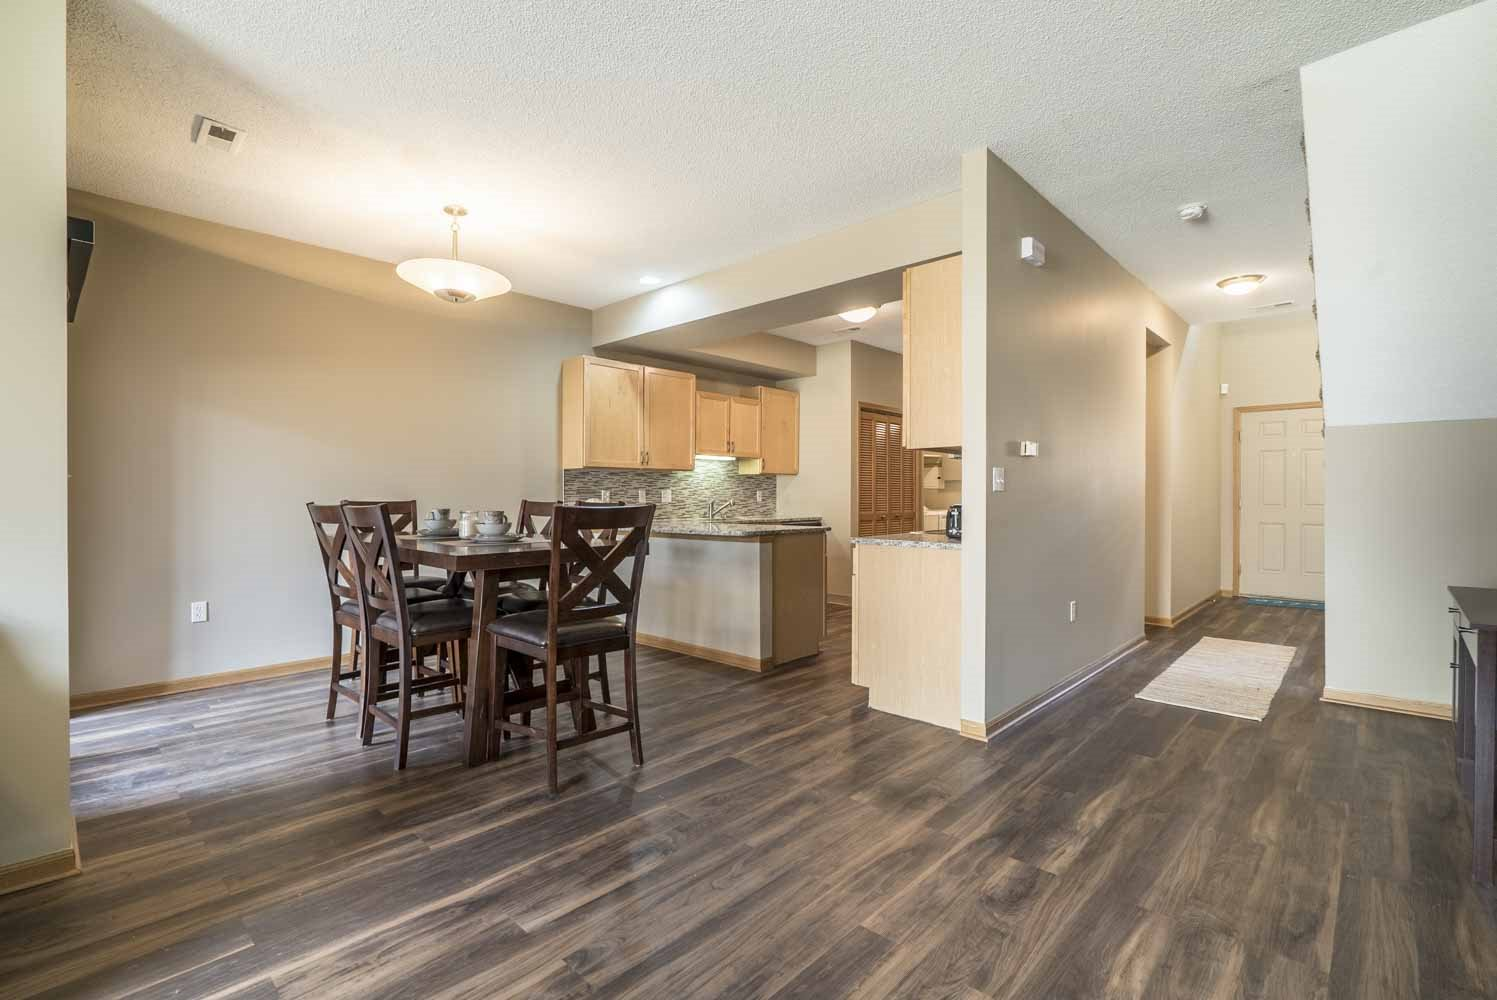 View of kitchen and dining room at Southwind Villas in southwest Omaha in La Vista, NE, 68128